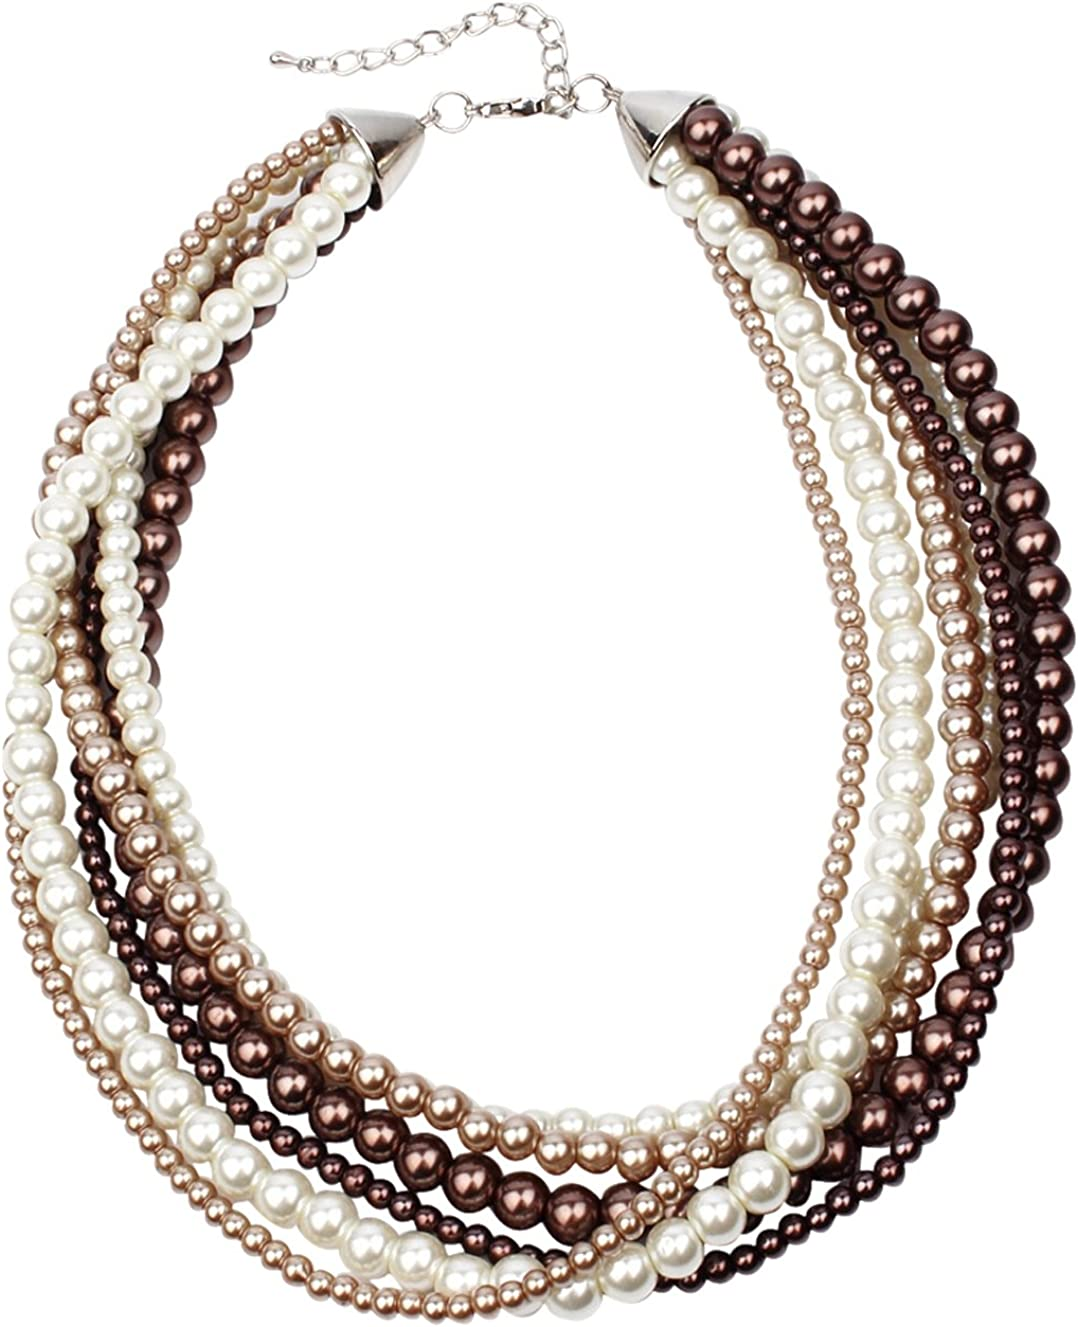 Multi-Strand White and Coffee Max 77% Choice OFF Faux Chunky Necklace Pearl